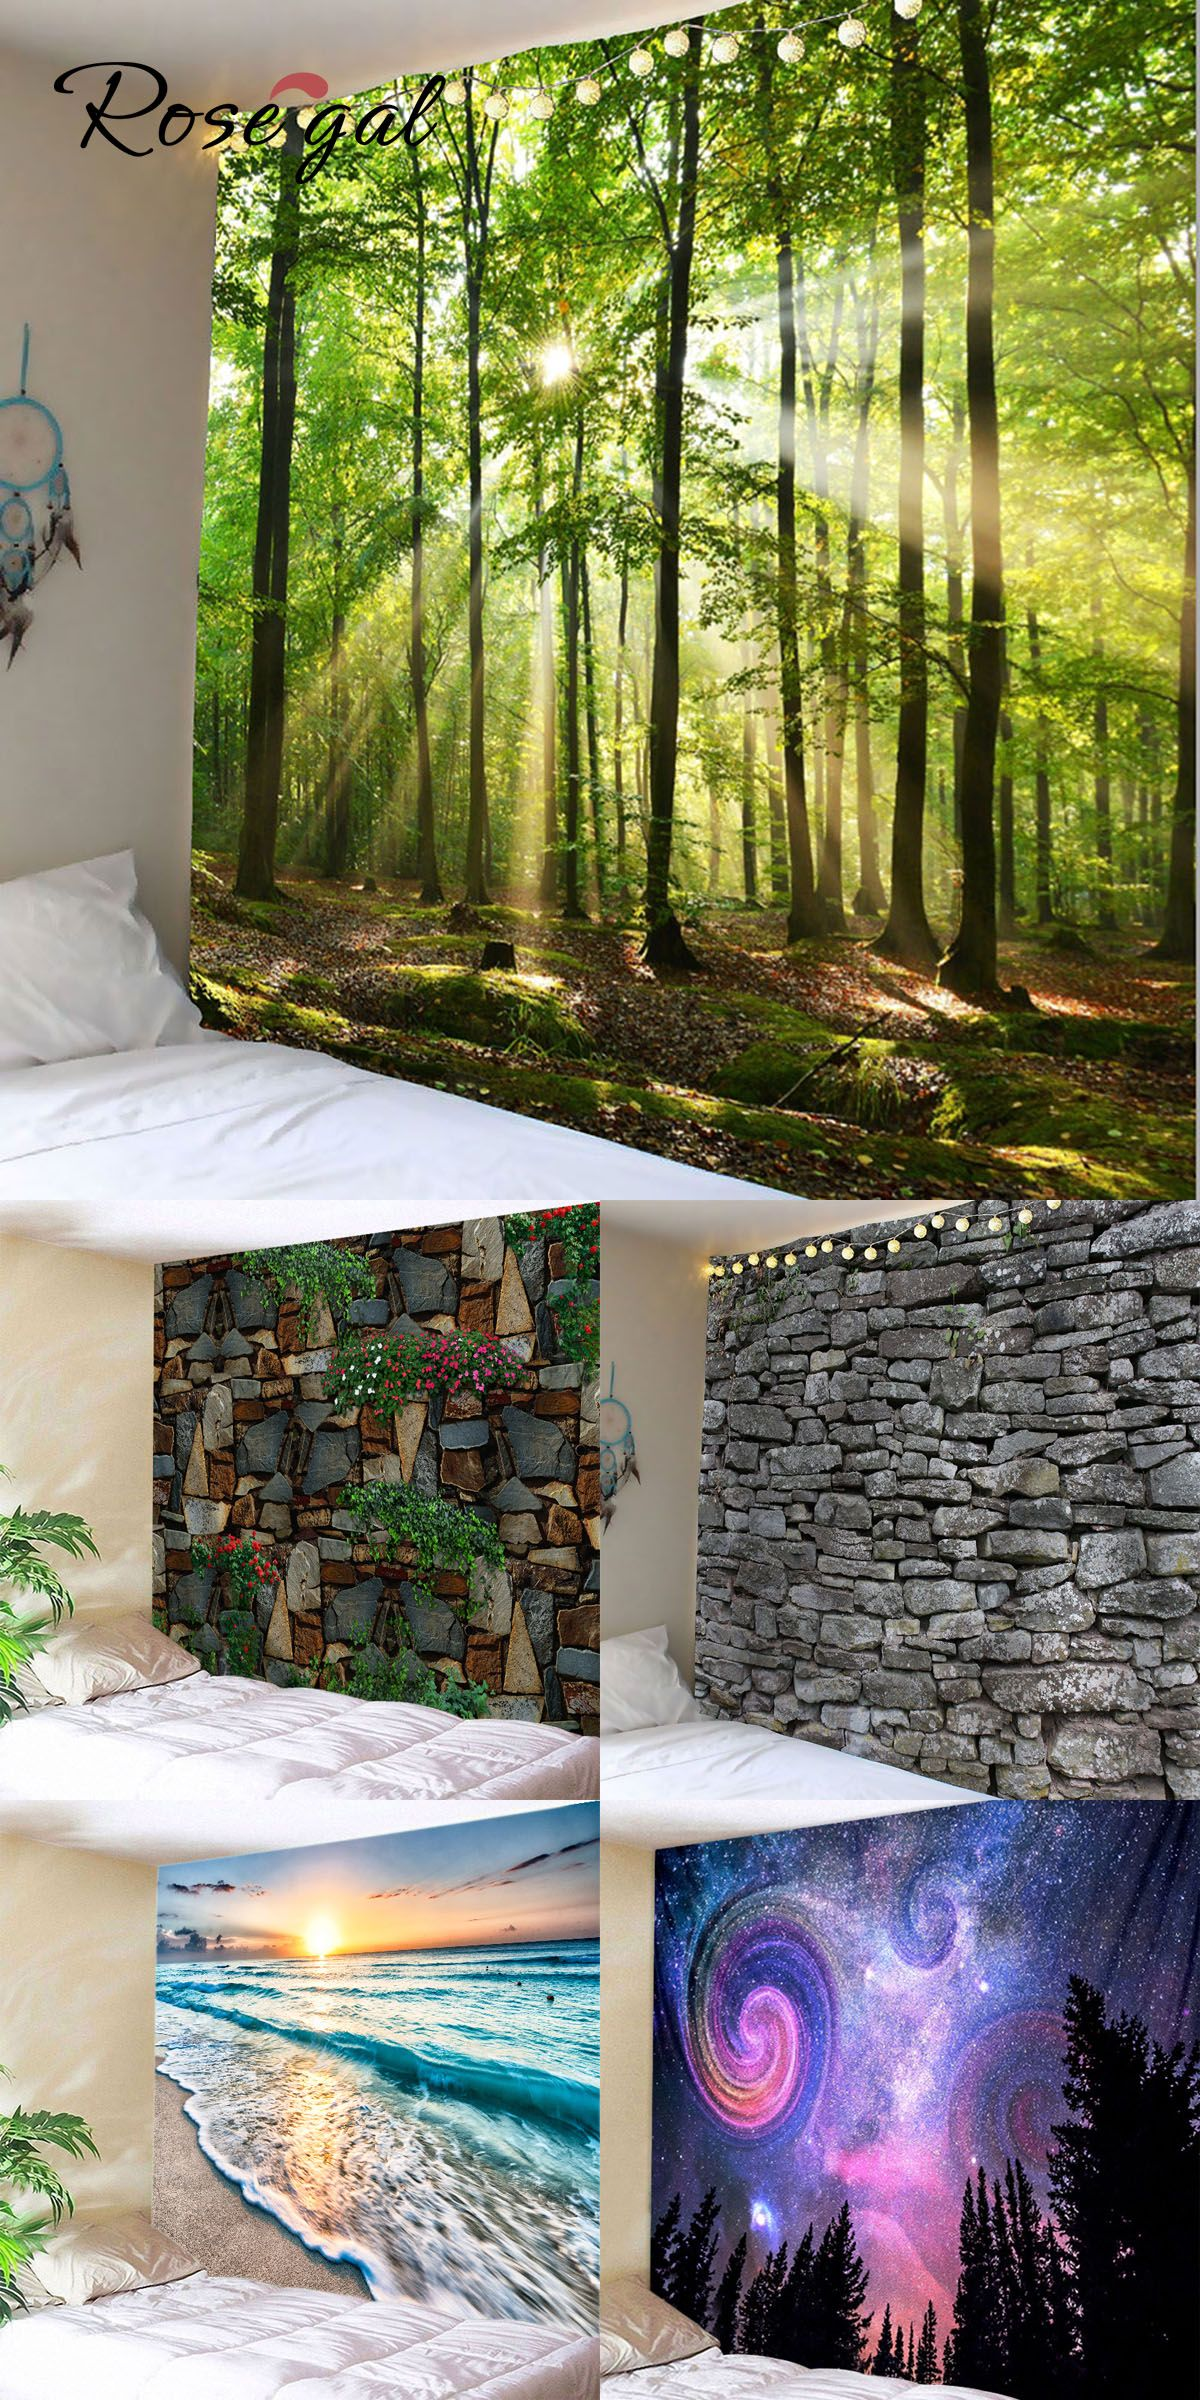 Free Shipment Worldwide Up To 70 Off Rosegal Home Decor Forest Brick Seaside Printed Decorative Wall Art Tapestry